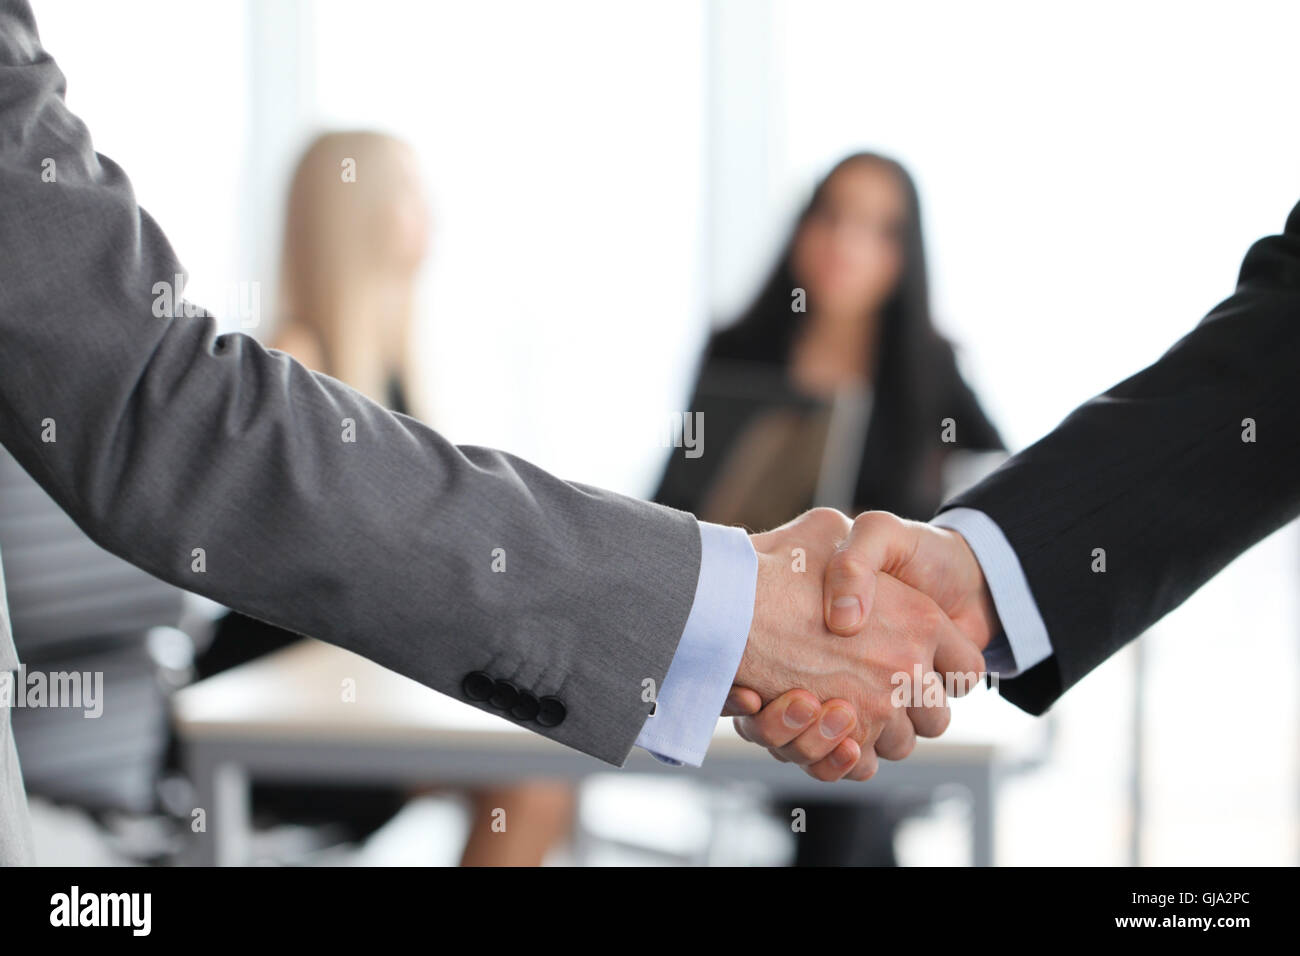 Close-up of handshake of businessmen on meeting in office - Stock Image